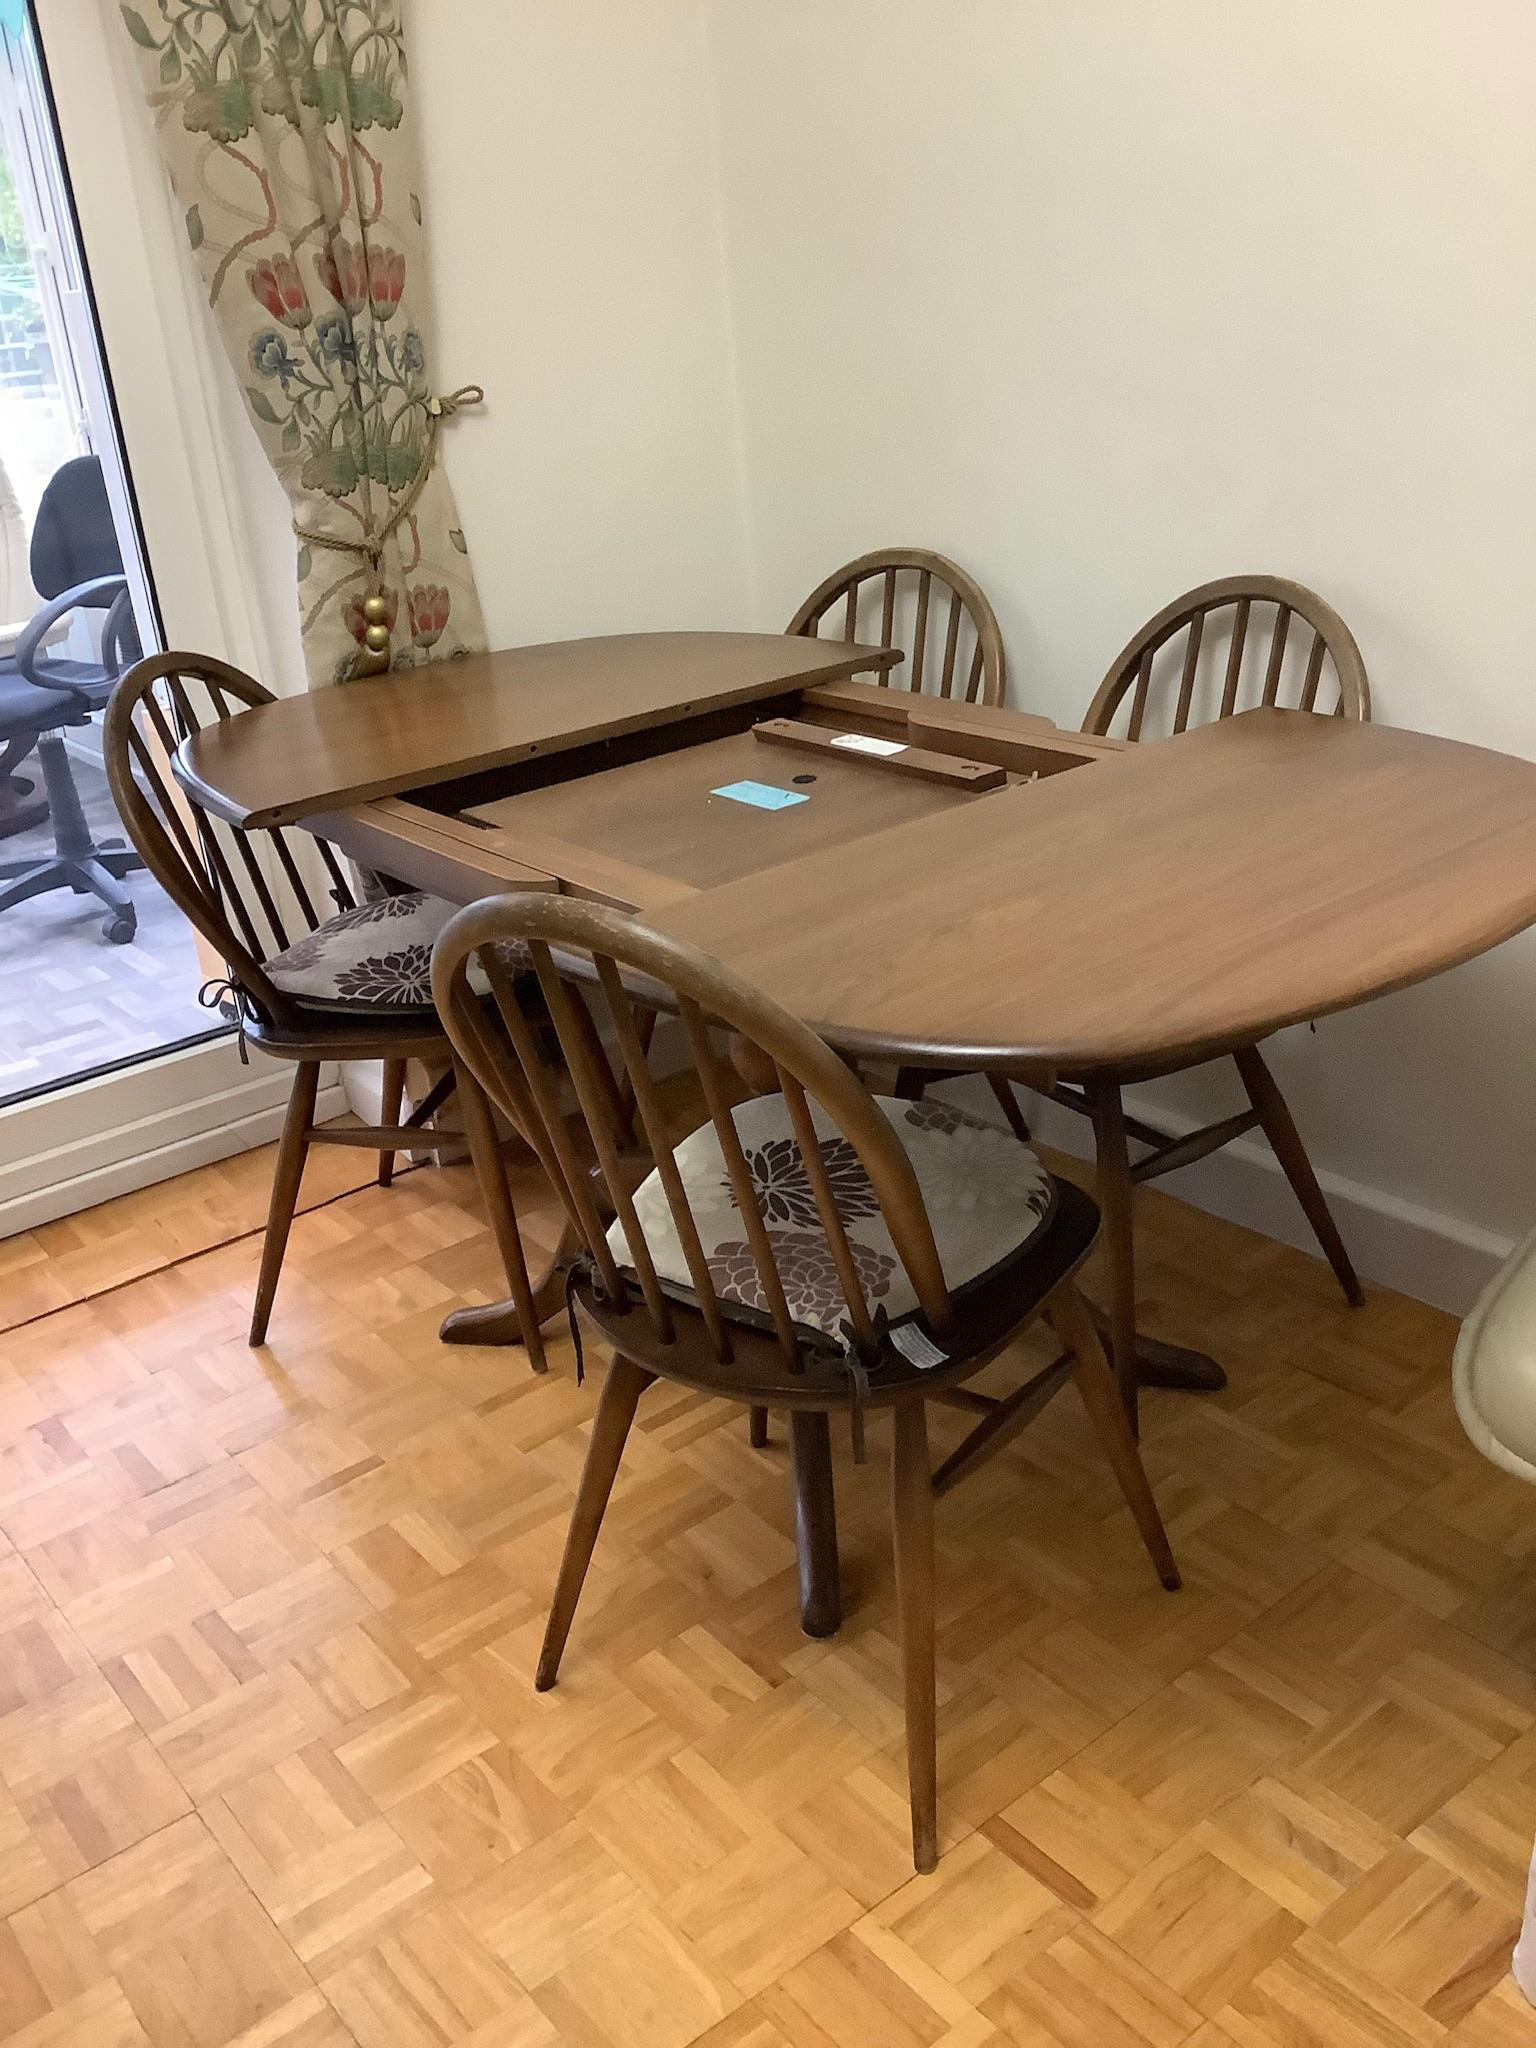 Ercol Dining Table and chair set